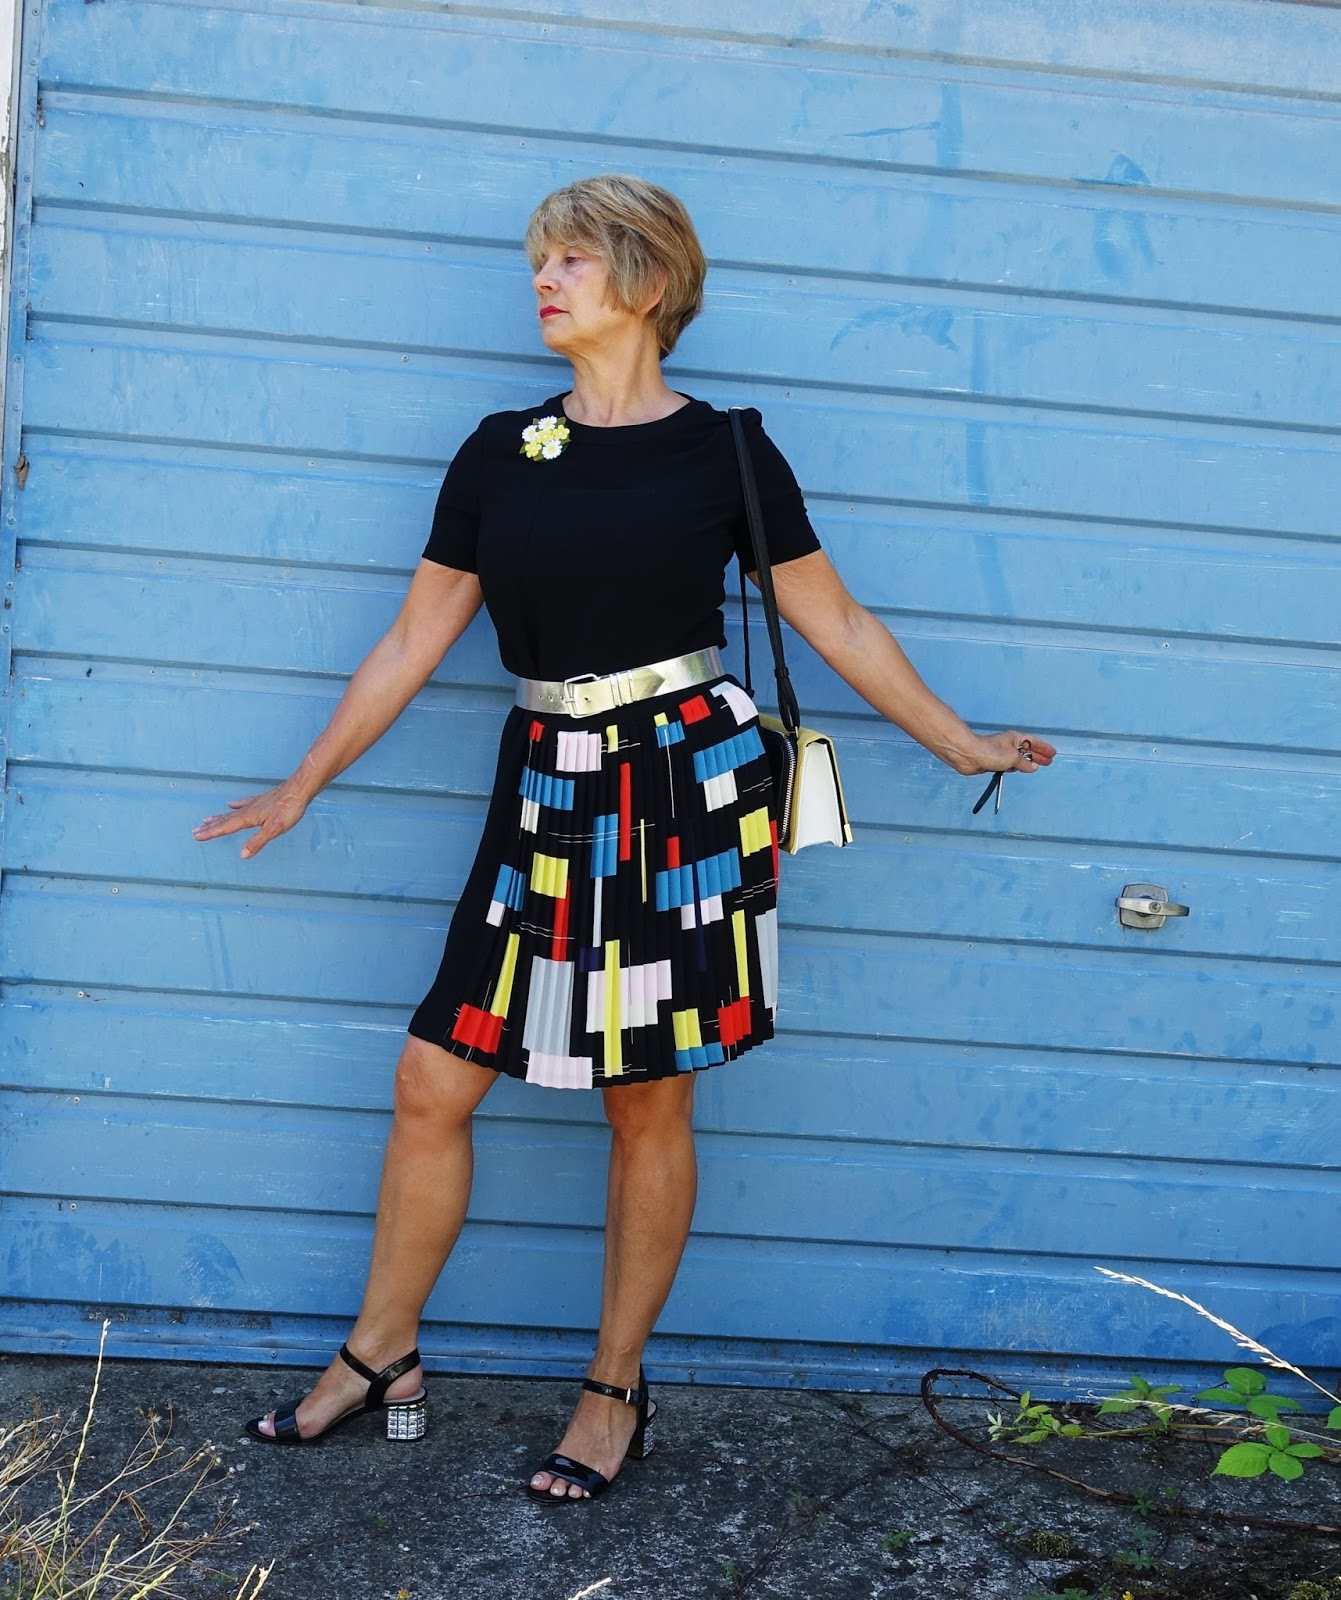 Gail Hanlon, blogger from Is This Mutton.com, adds yellow and silver accessories to a black panel pleat dress from Next to add some individuality for a cool workplace outfit.